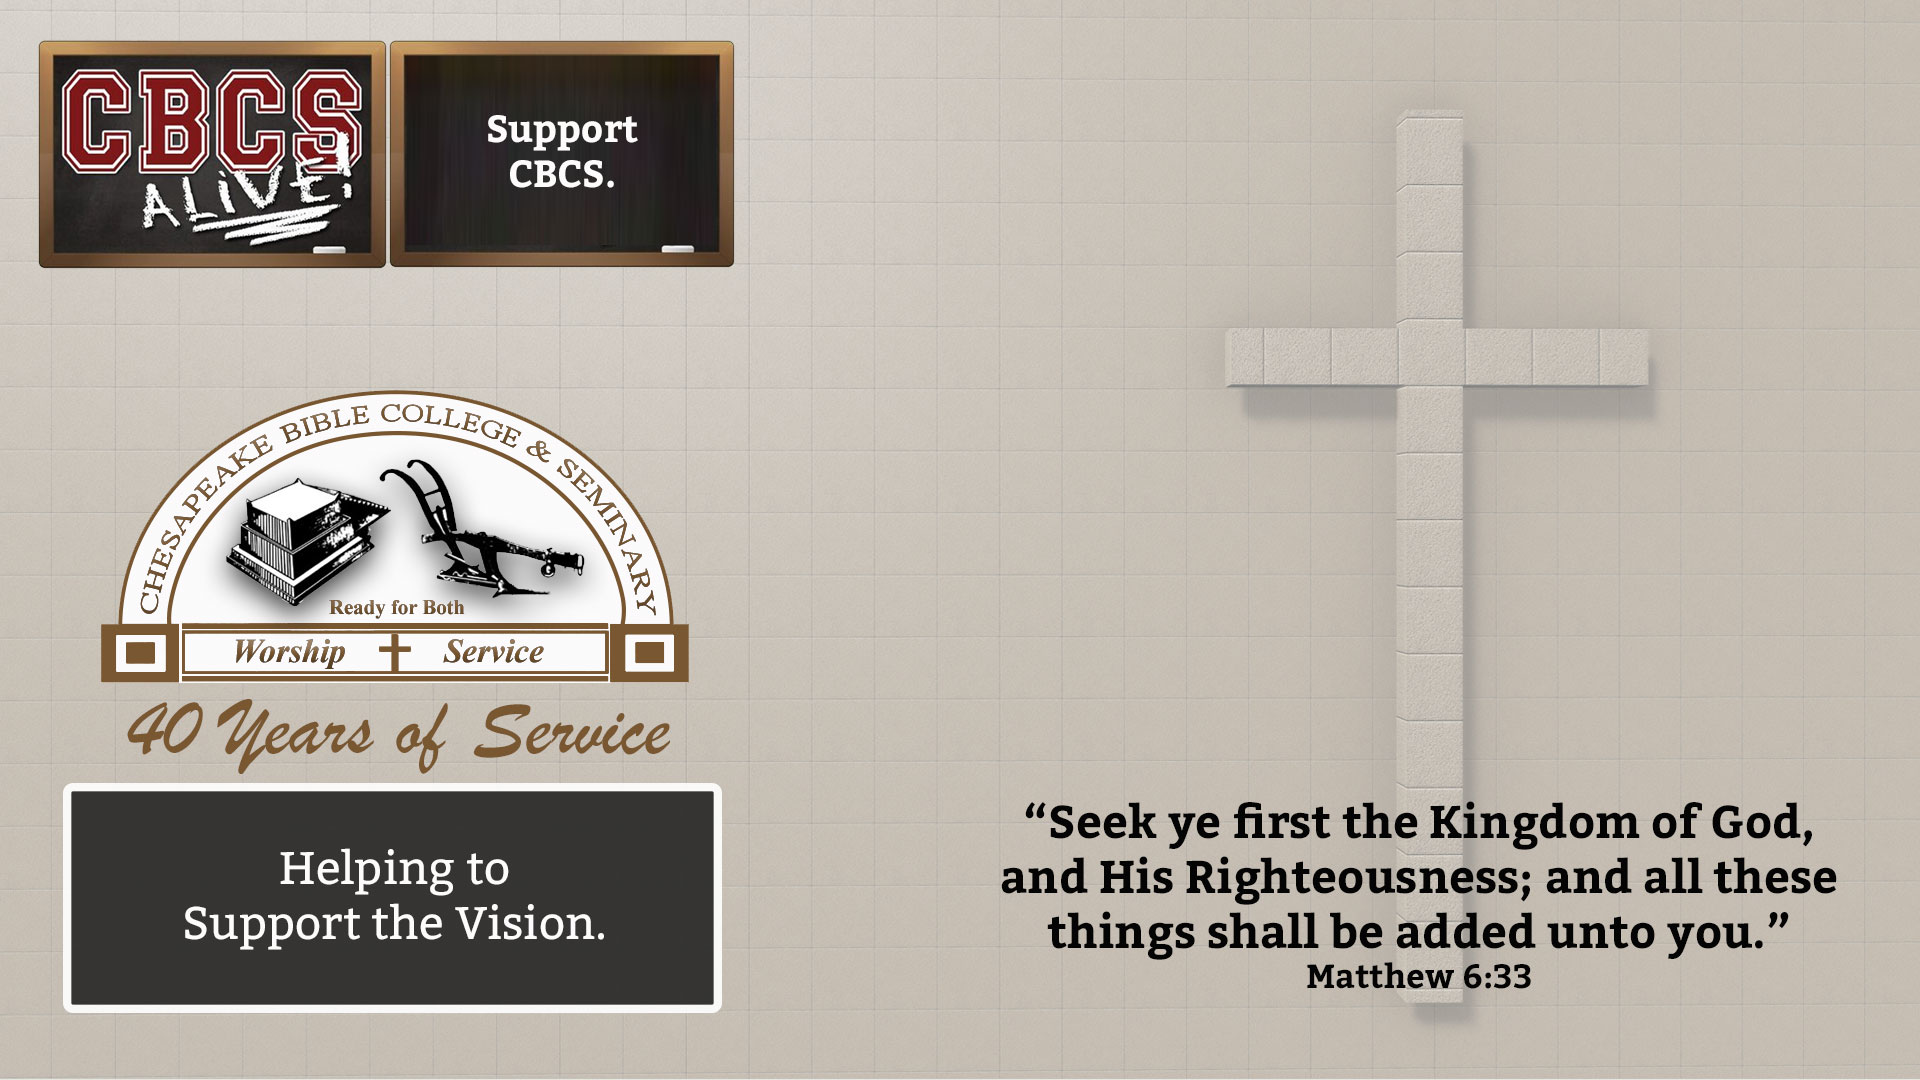 Chesapeake Bible College & Seminary Support the Vision